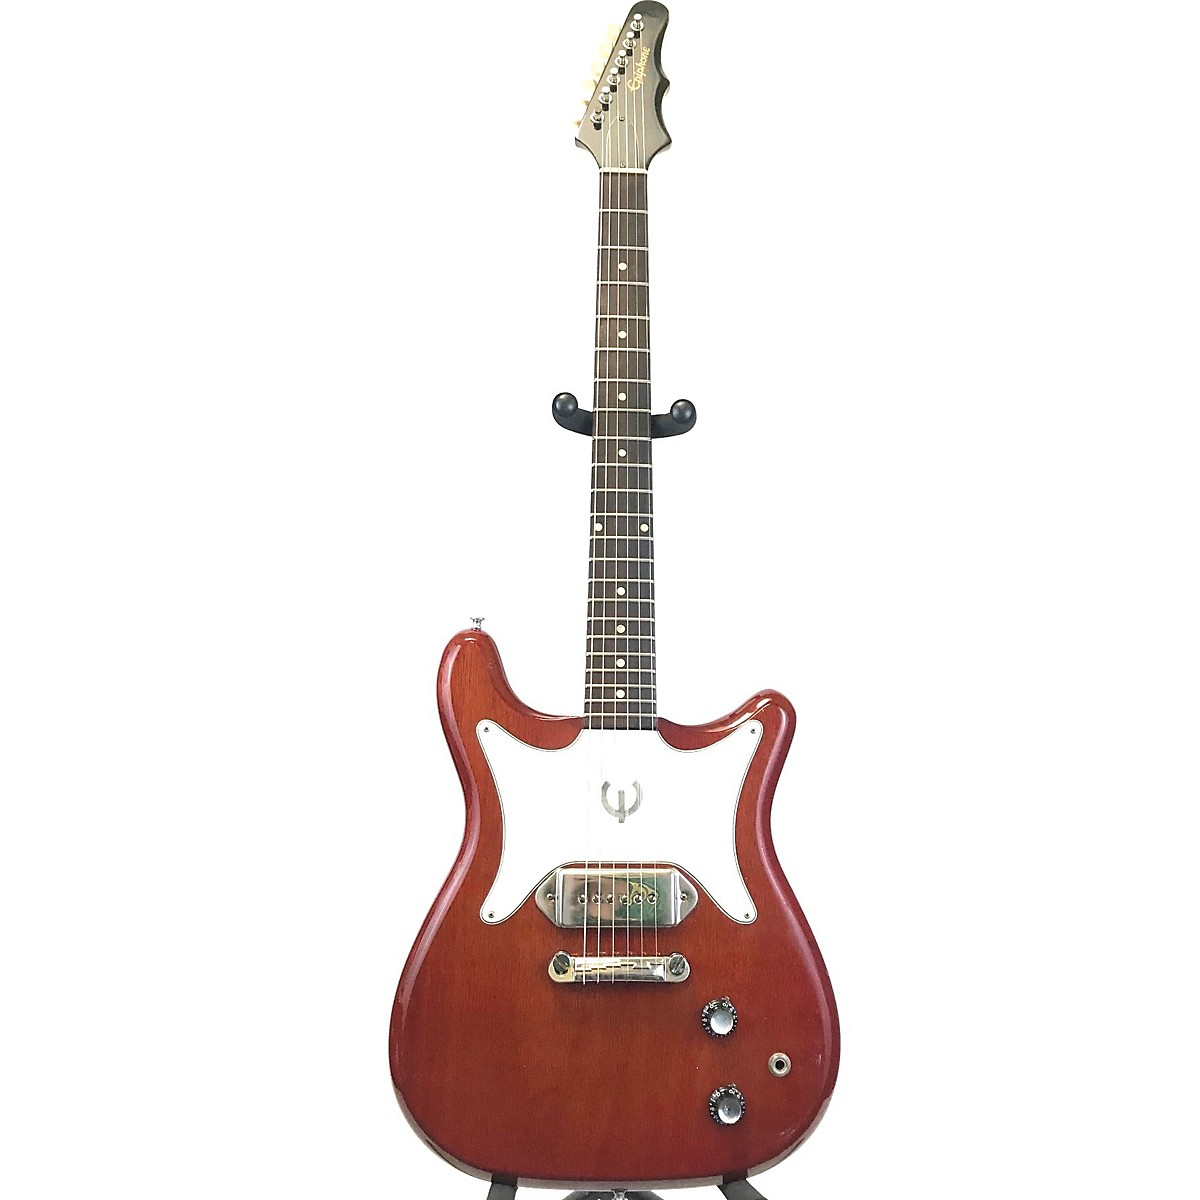 Epiphone 1963 Coronet Solid Body Electric Guitar